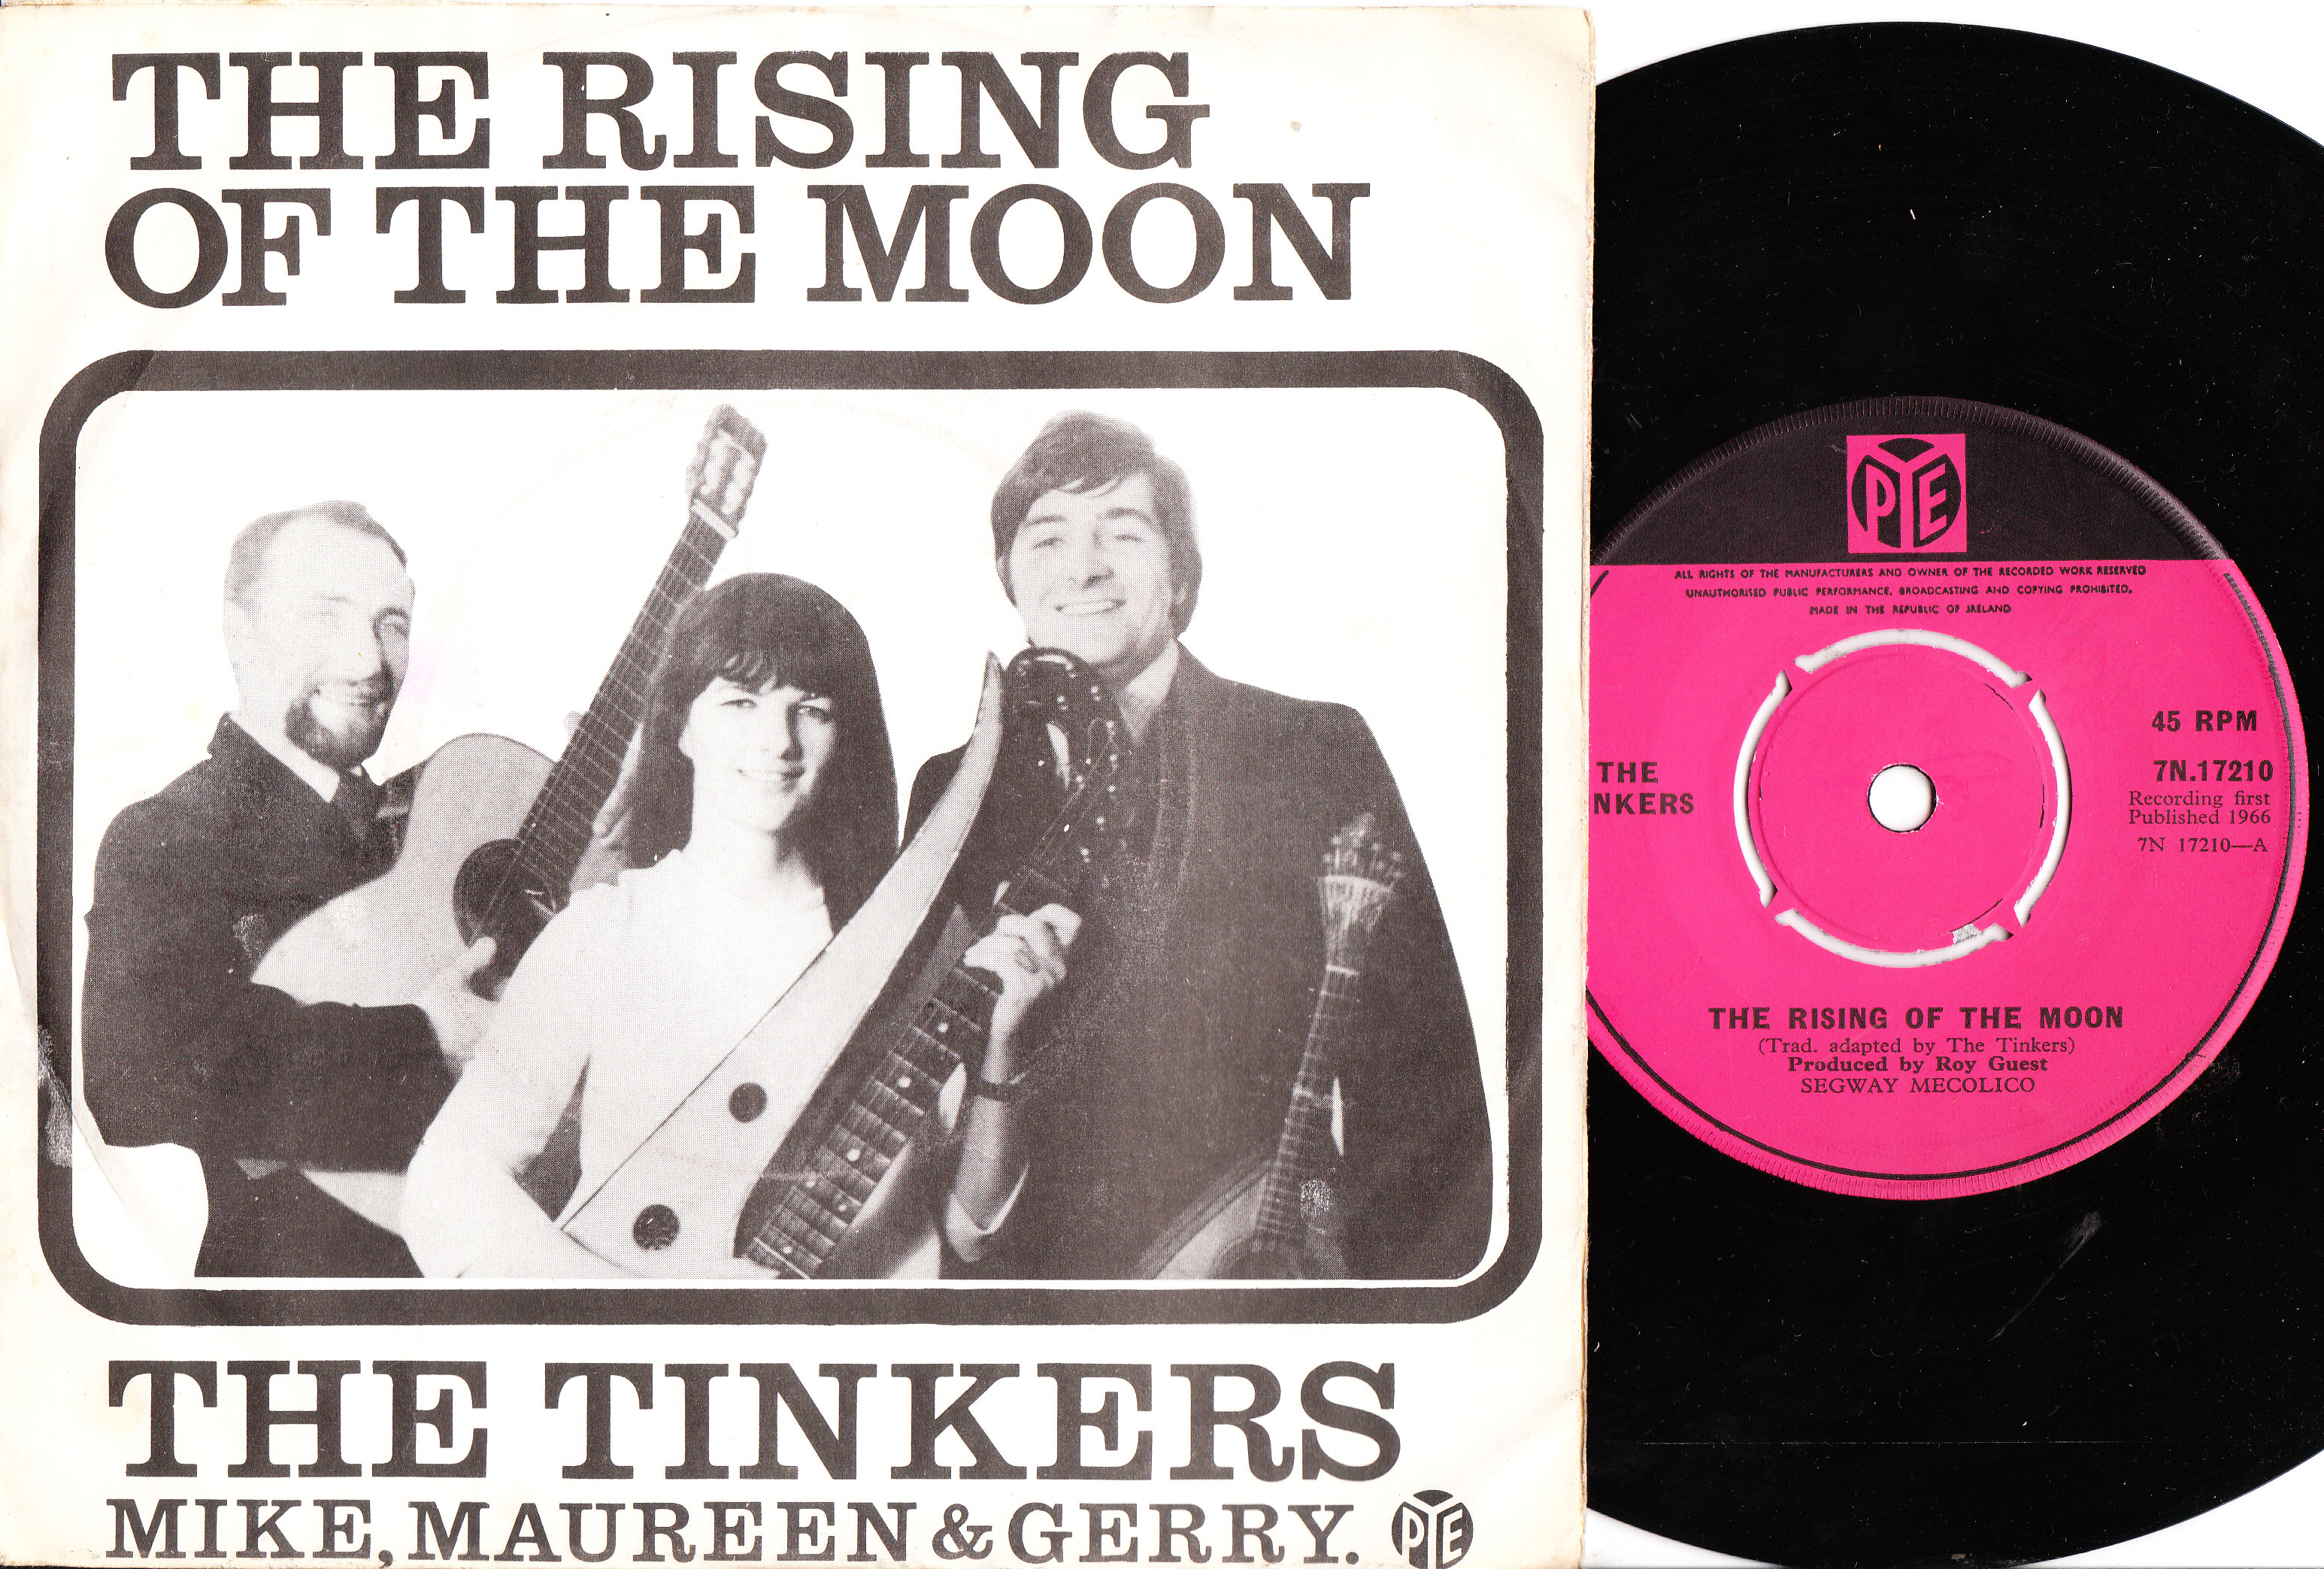 The Tinkers - Rising Of The Moon - PYE 7N 17210